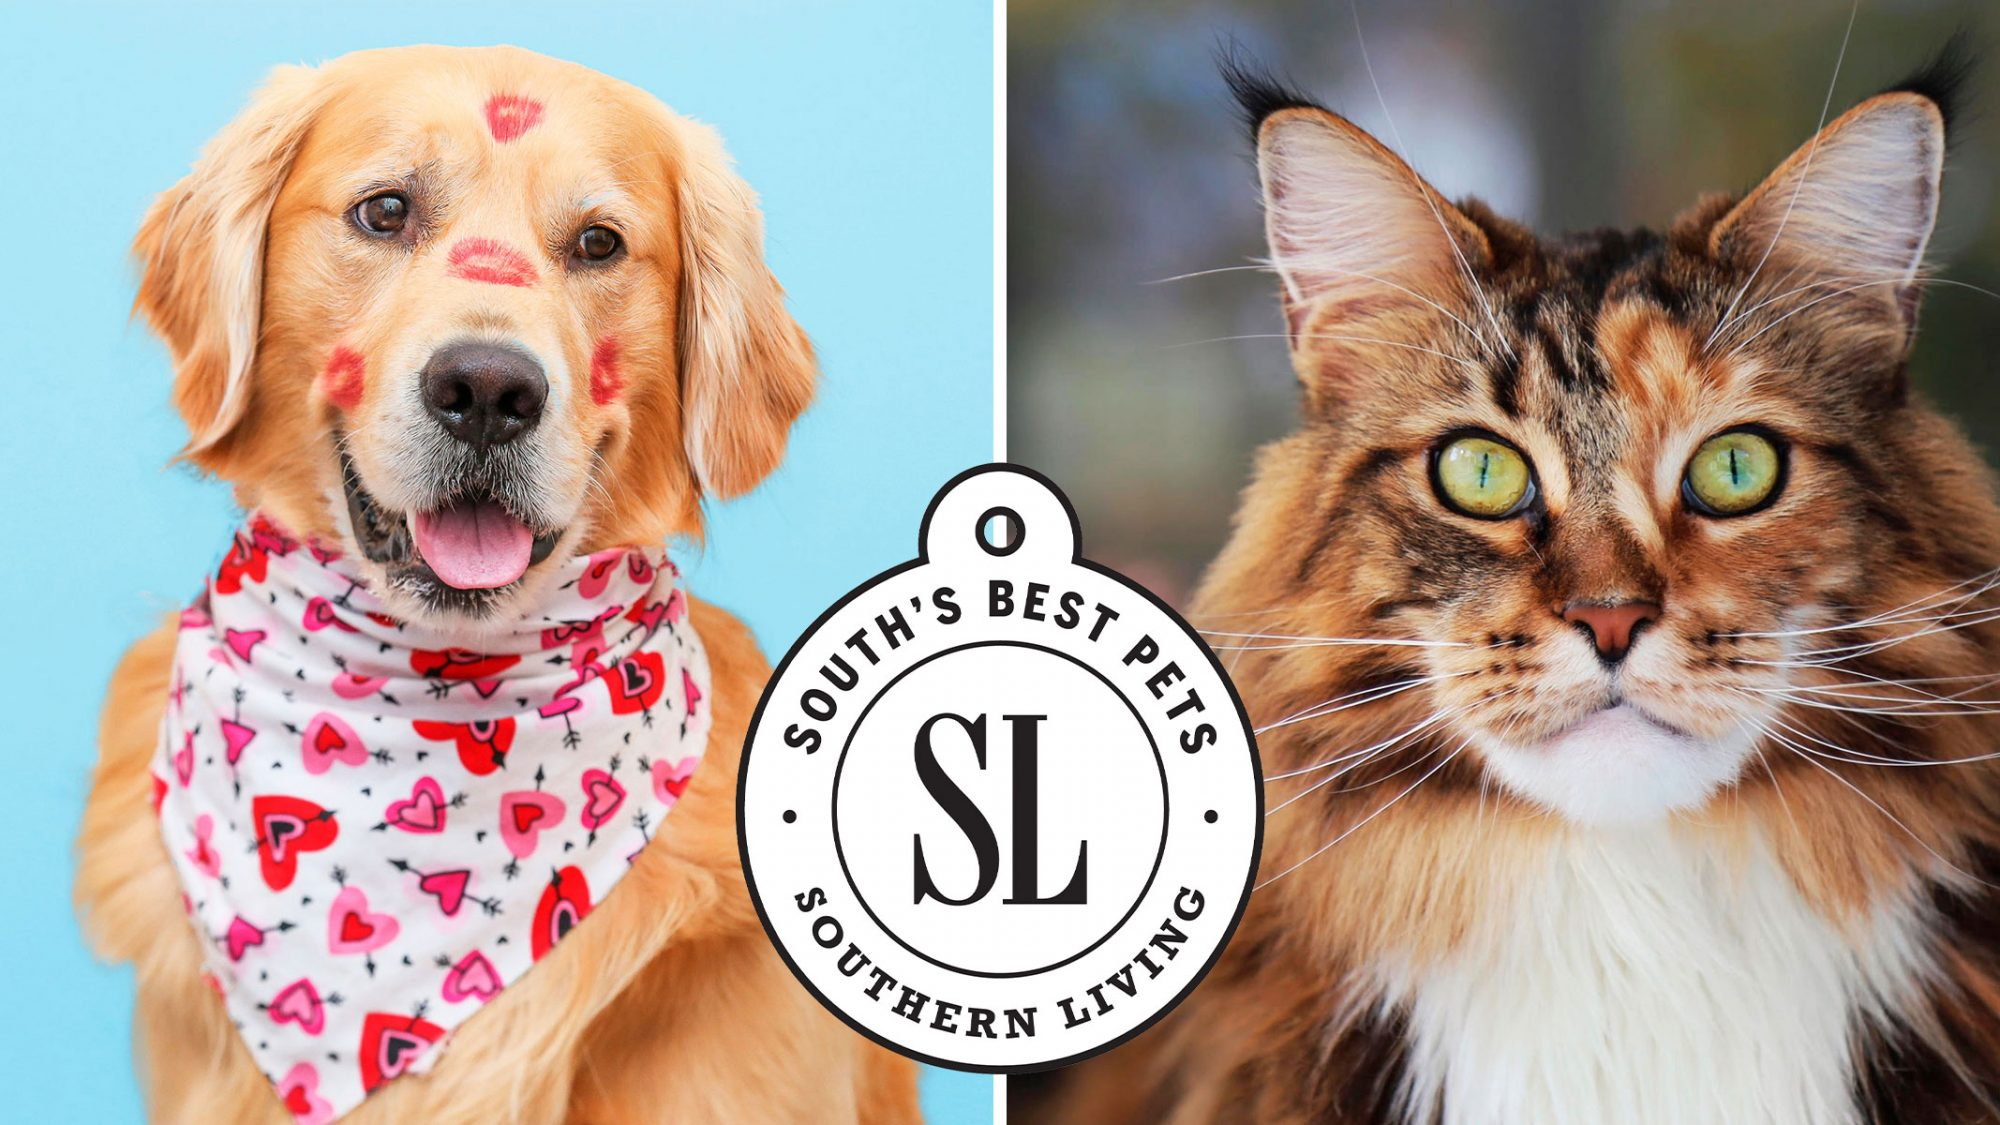 Two winners of Southern Living's South's Best Pets 2021